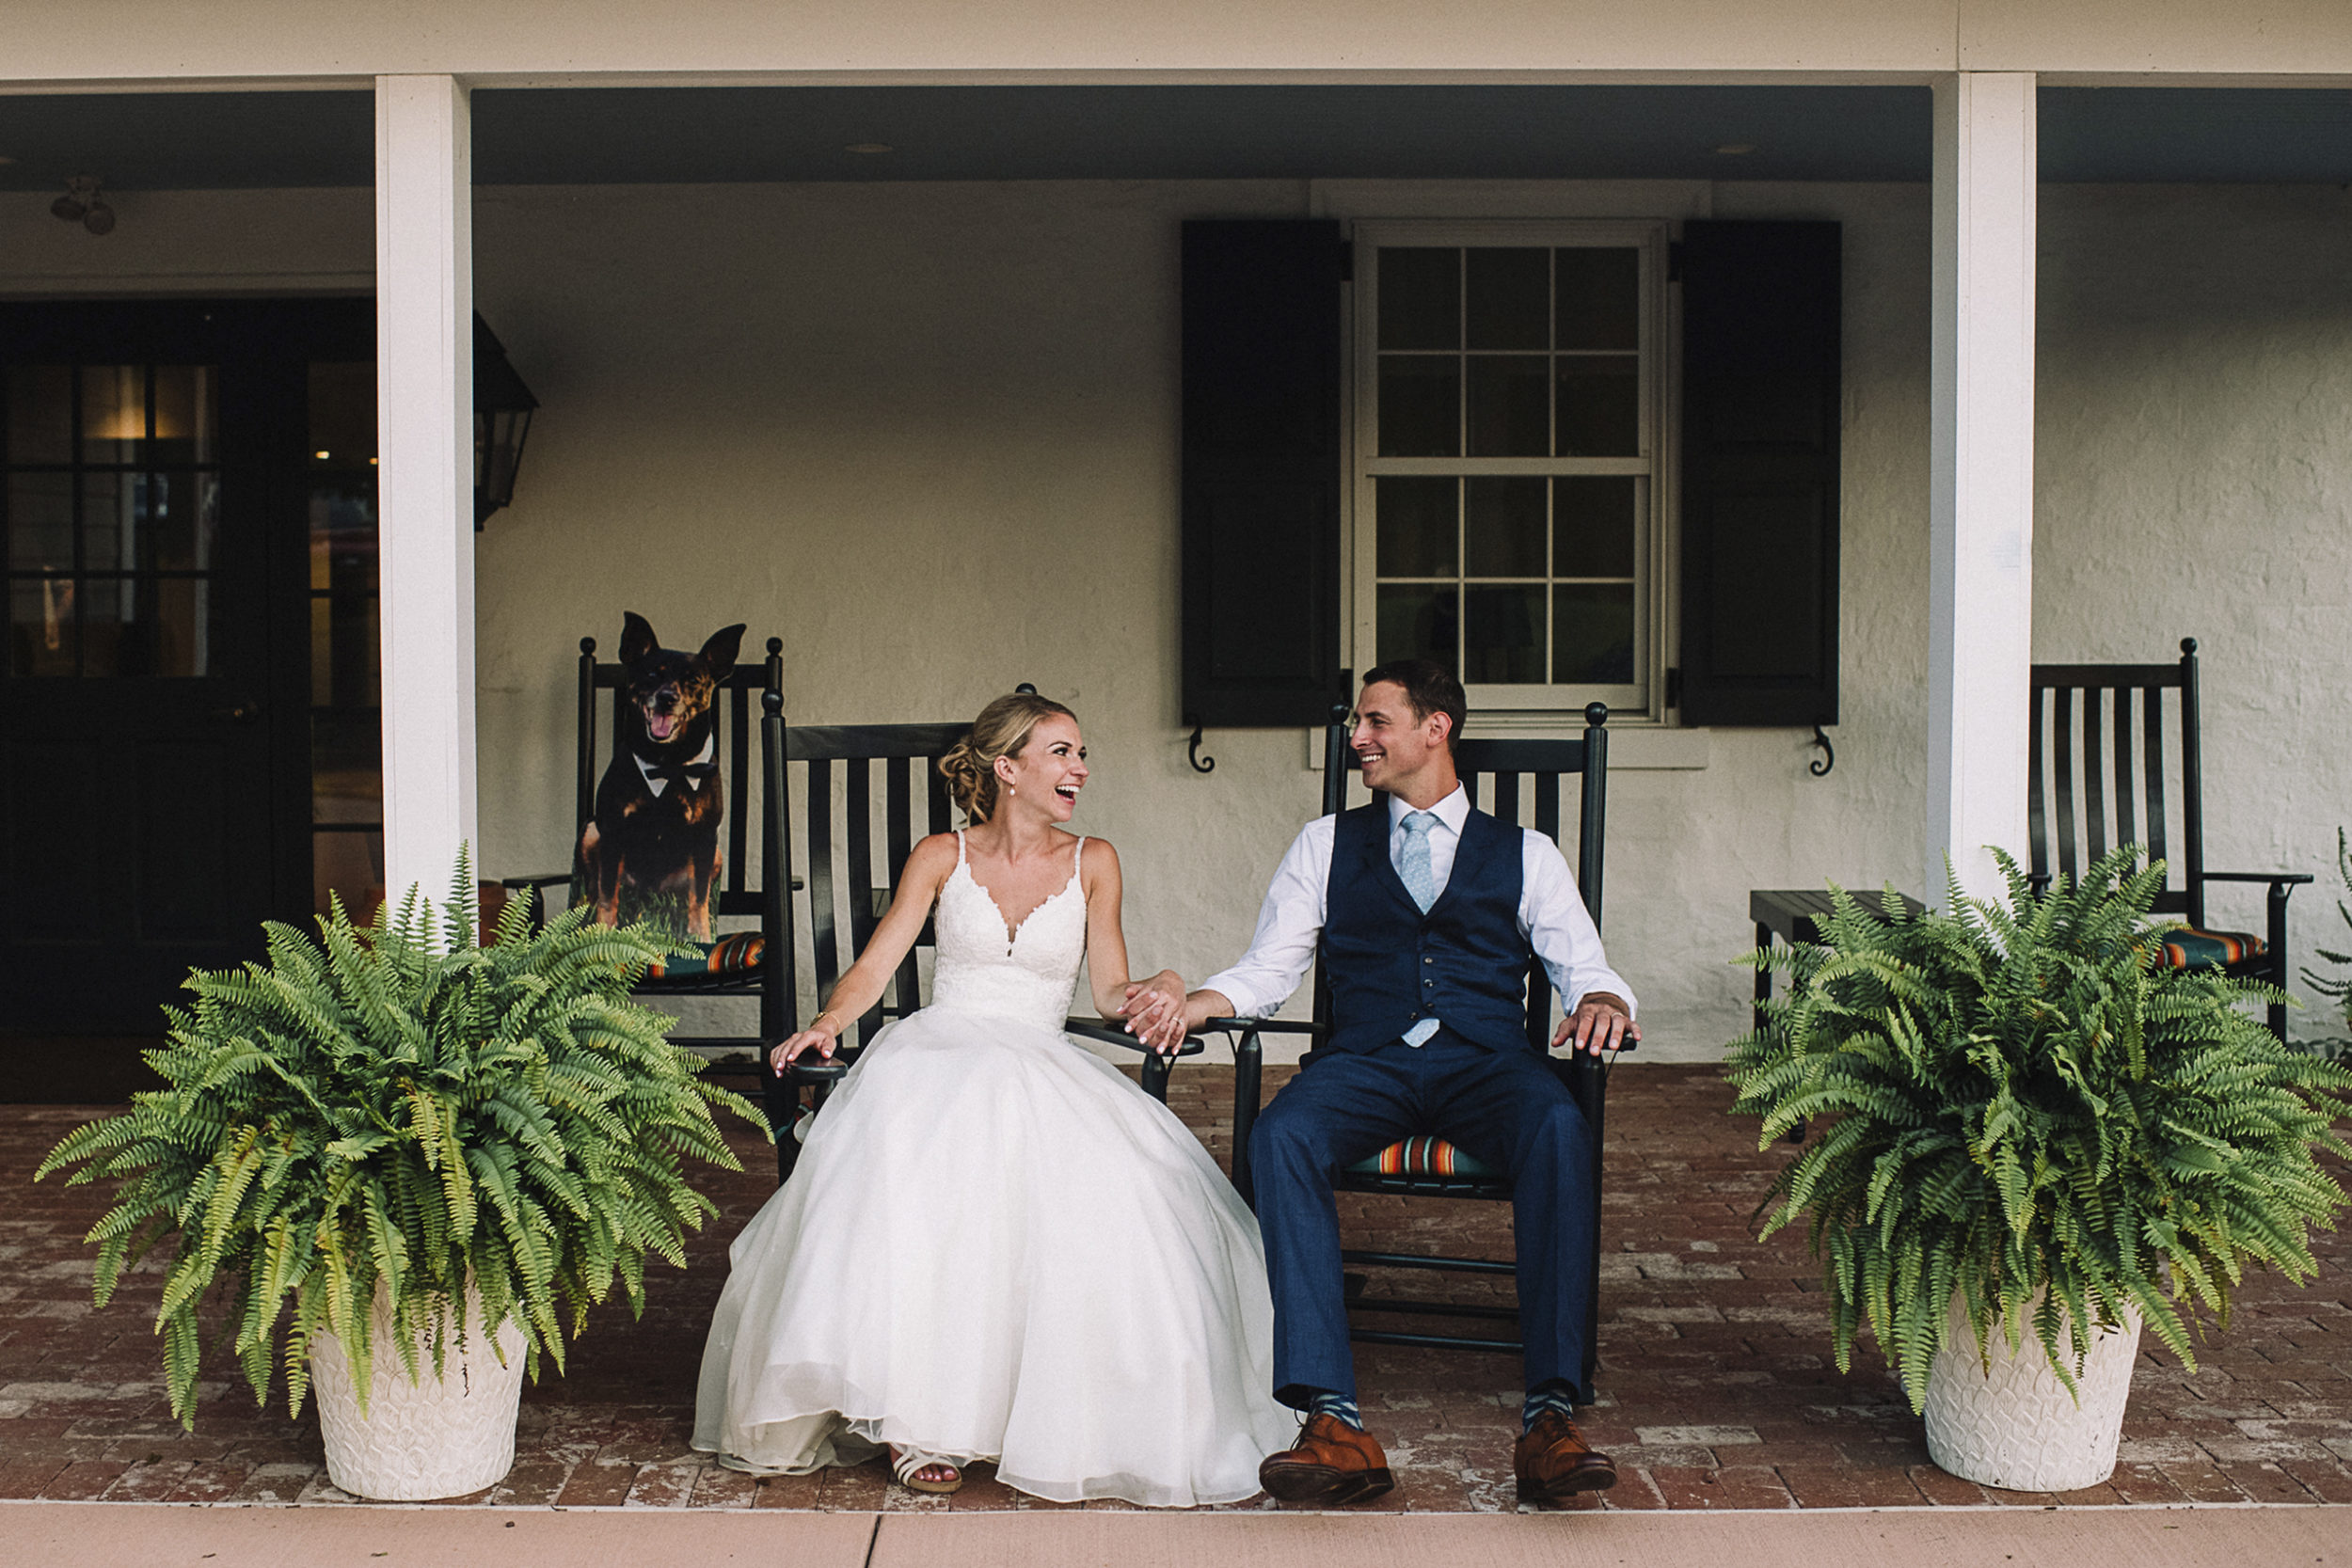 Katie & Dan - Durham Springs - Nina Lily Photography